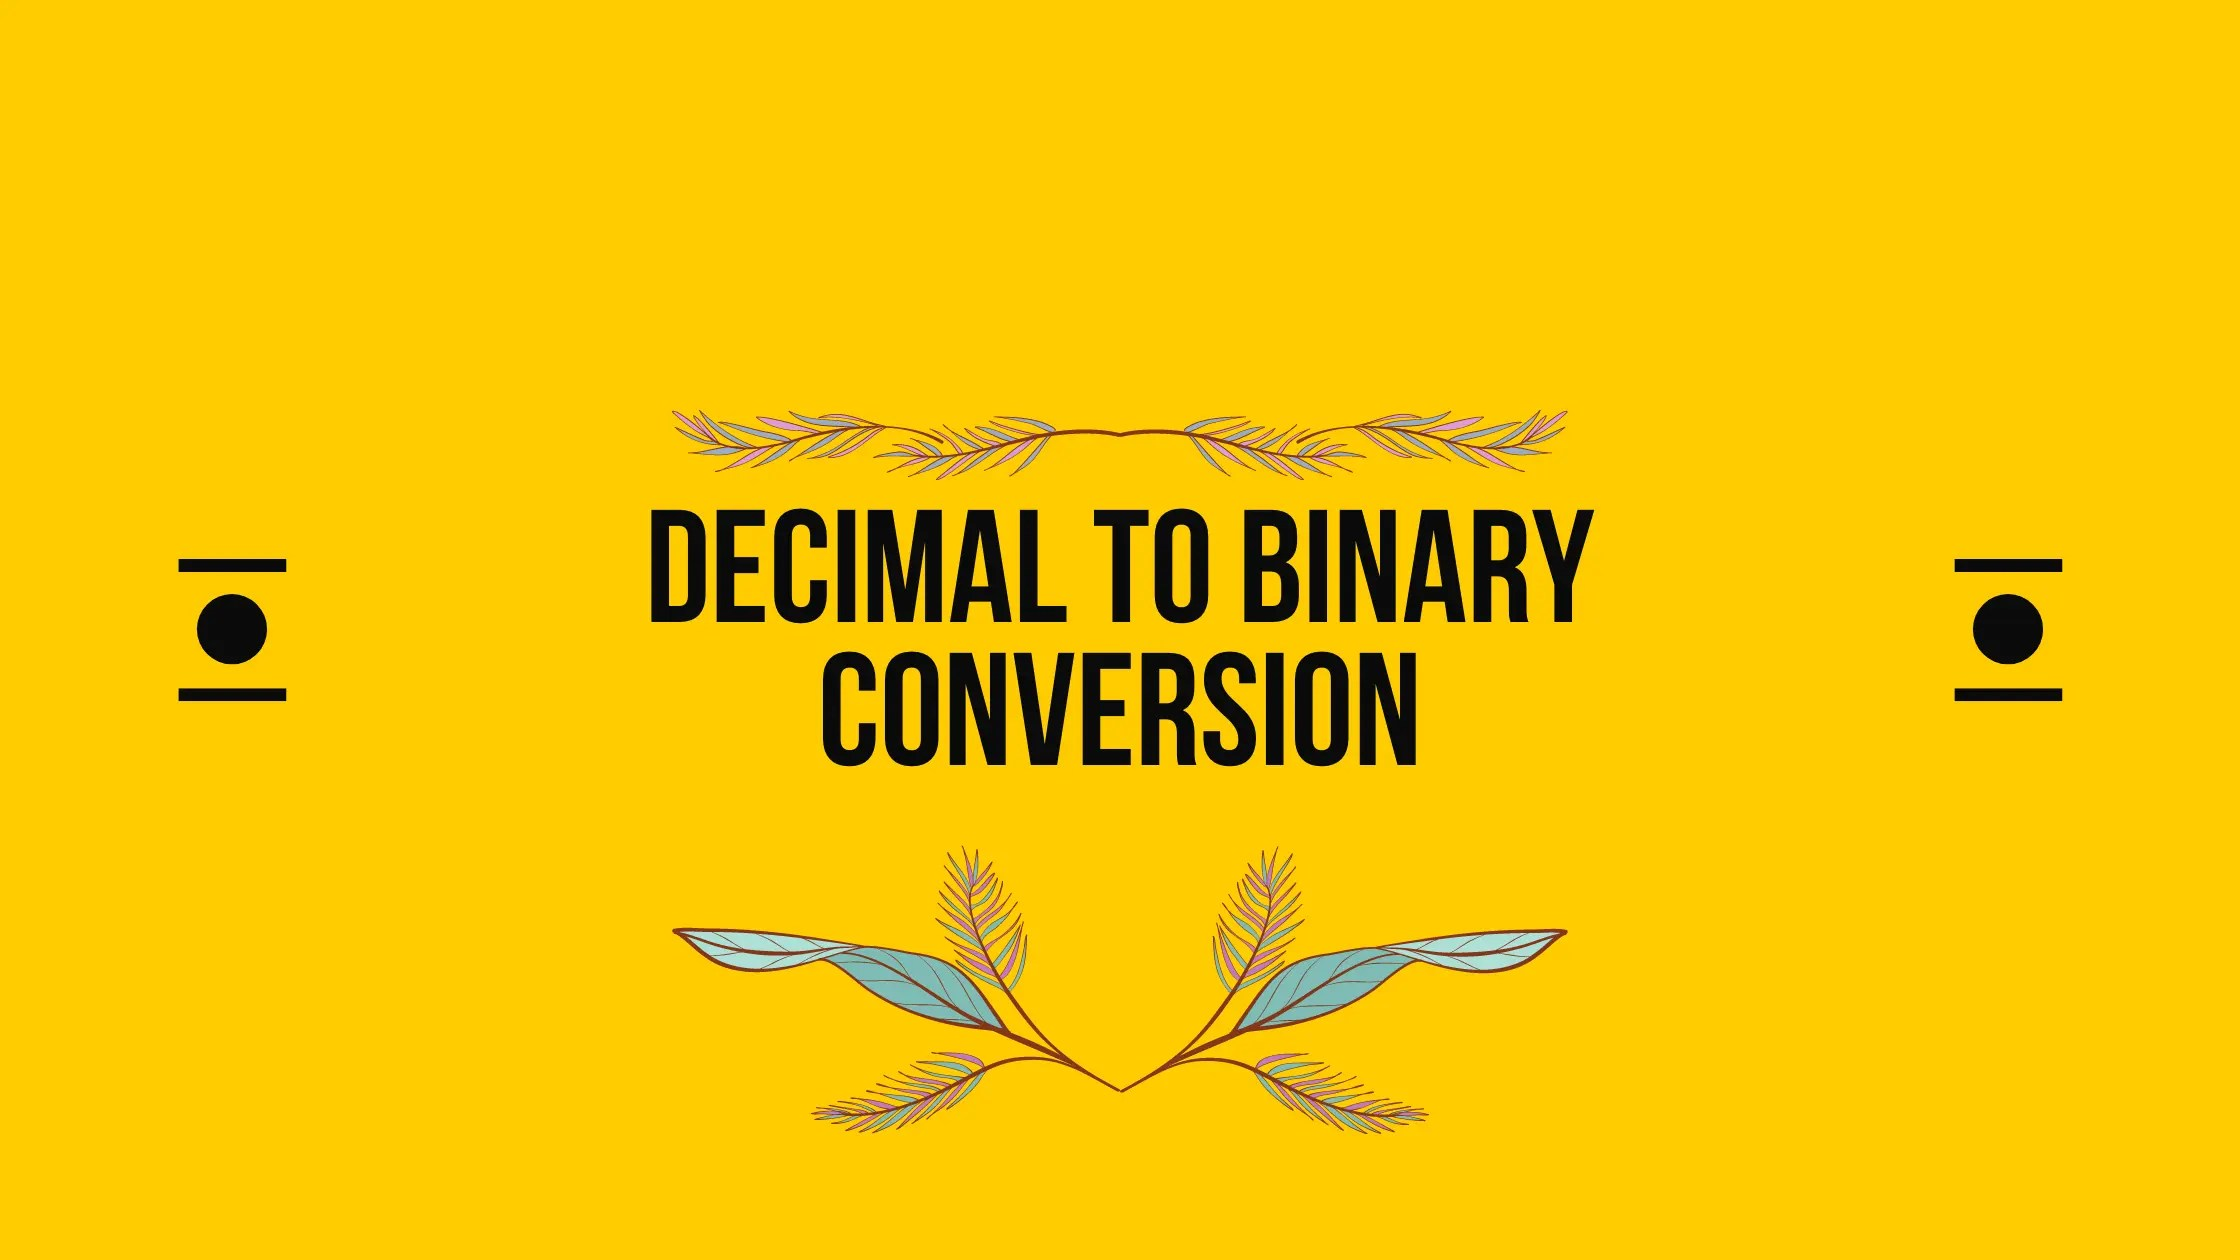 How To Do Decimal To Binary Conversion